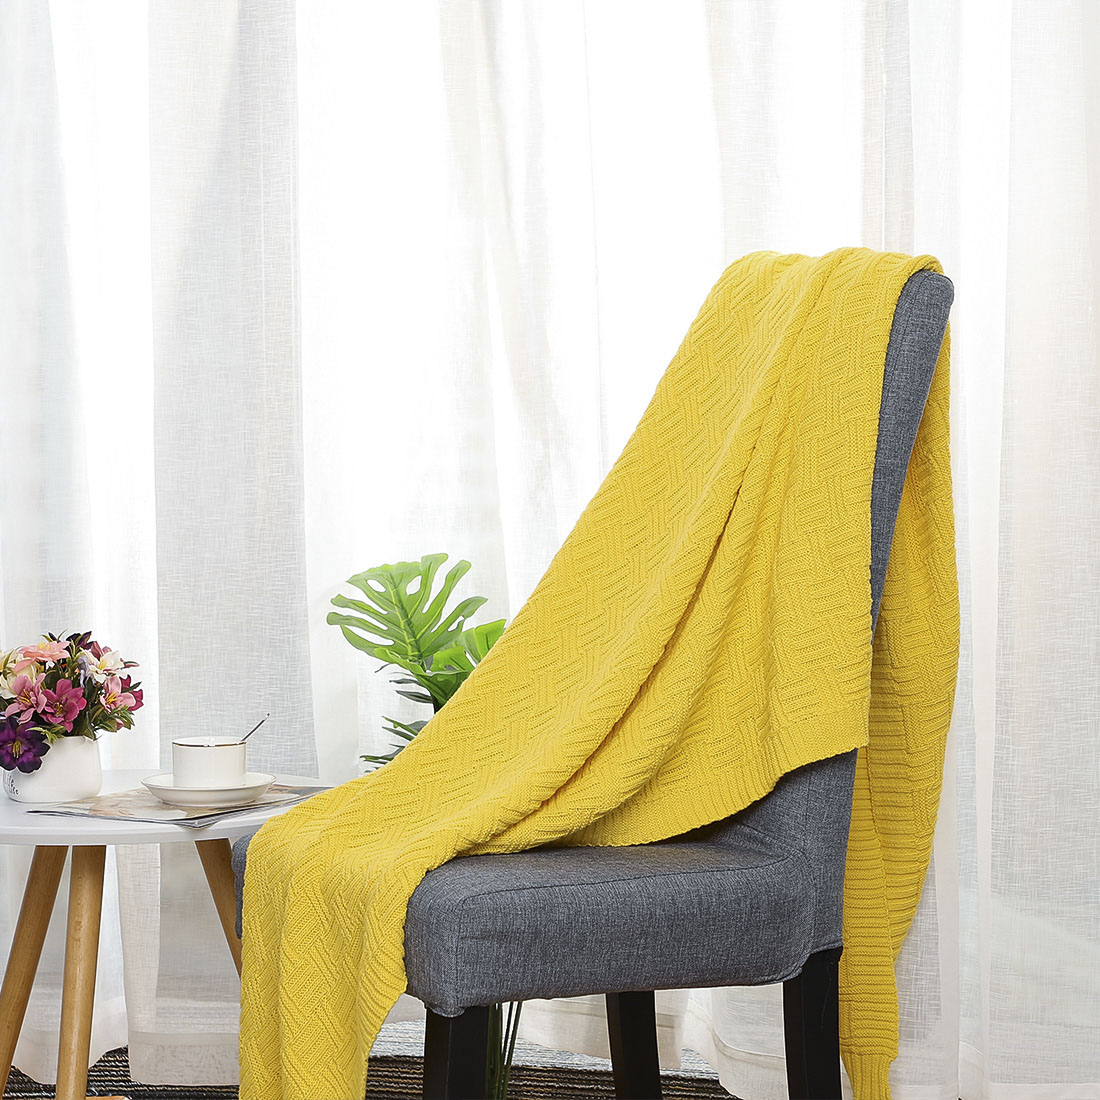 Lightweight-Warm-Soft-100-Cotton-Cable-Knit-Throw-Blanket-Sofa-Bed-Travel-Throw thumbnail 14